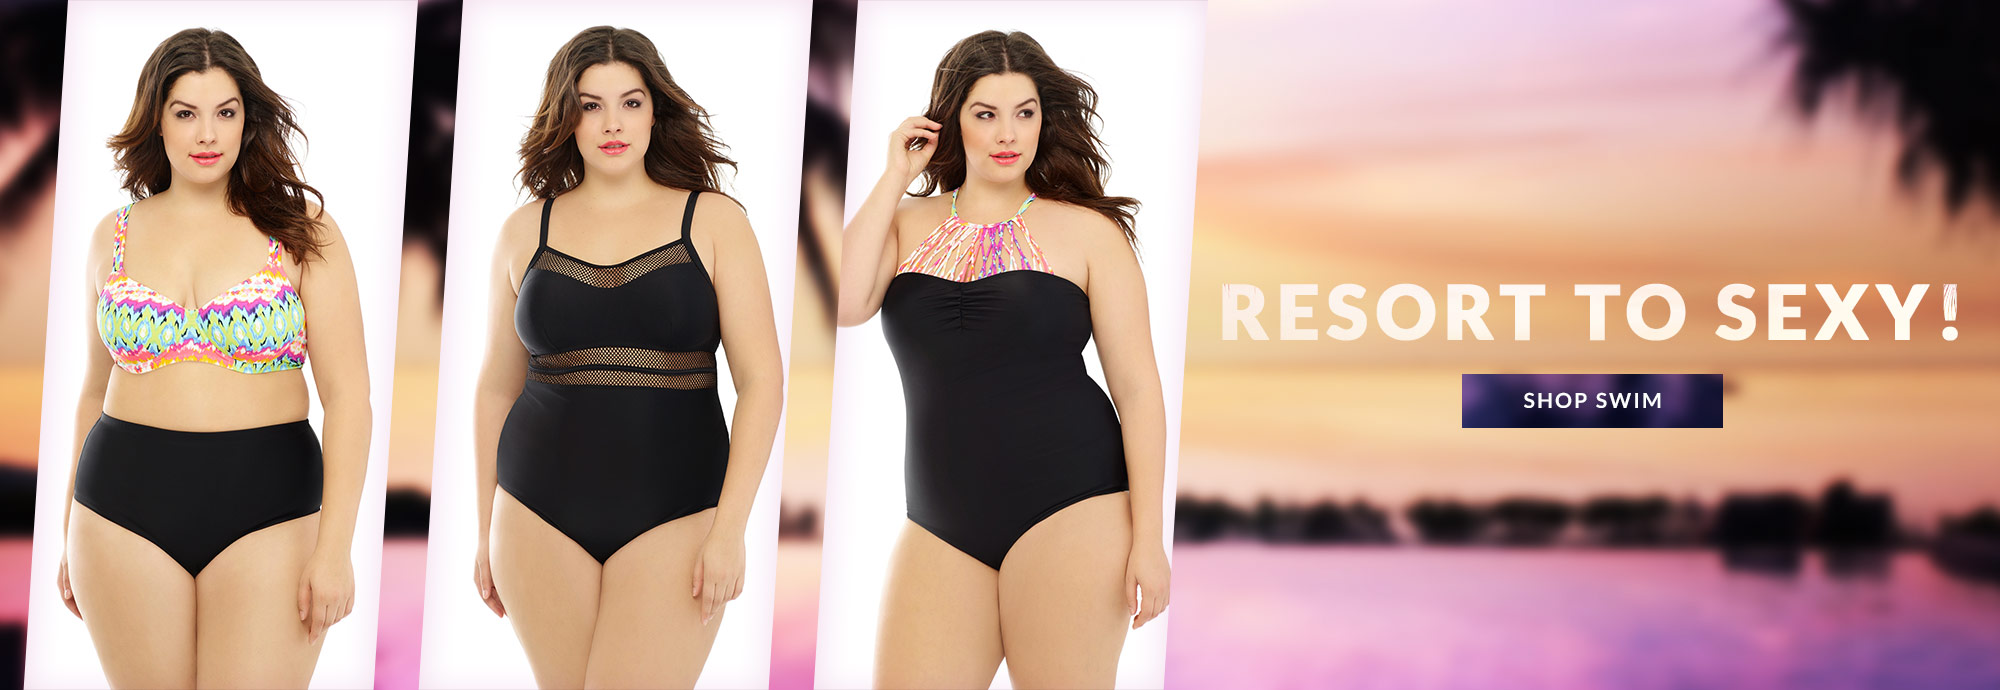 New Plus Size Swimwear Makes a Splash at Yandy.com » Florida ...